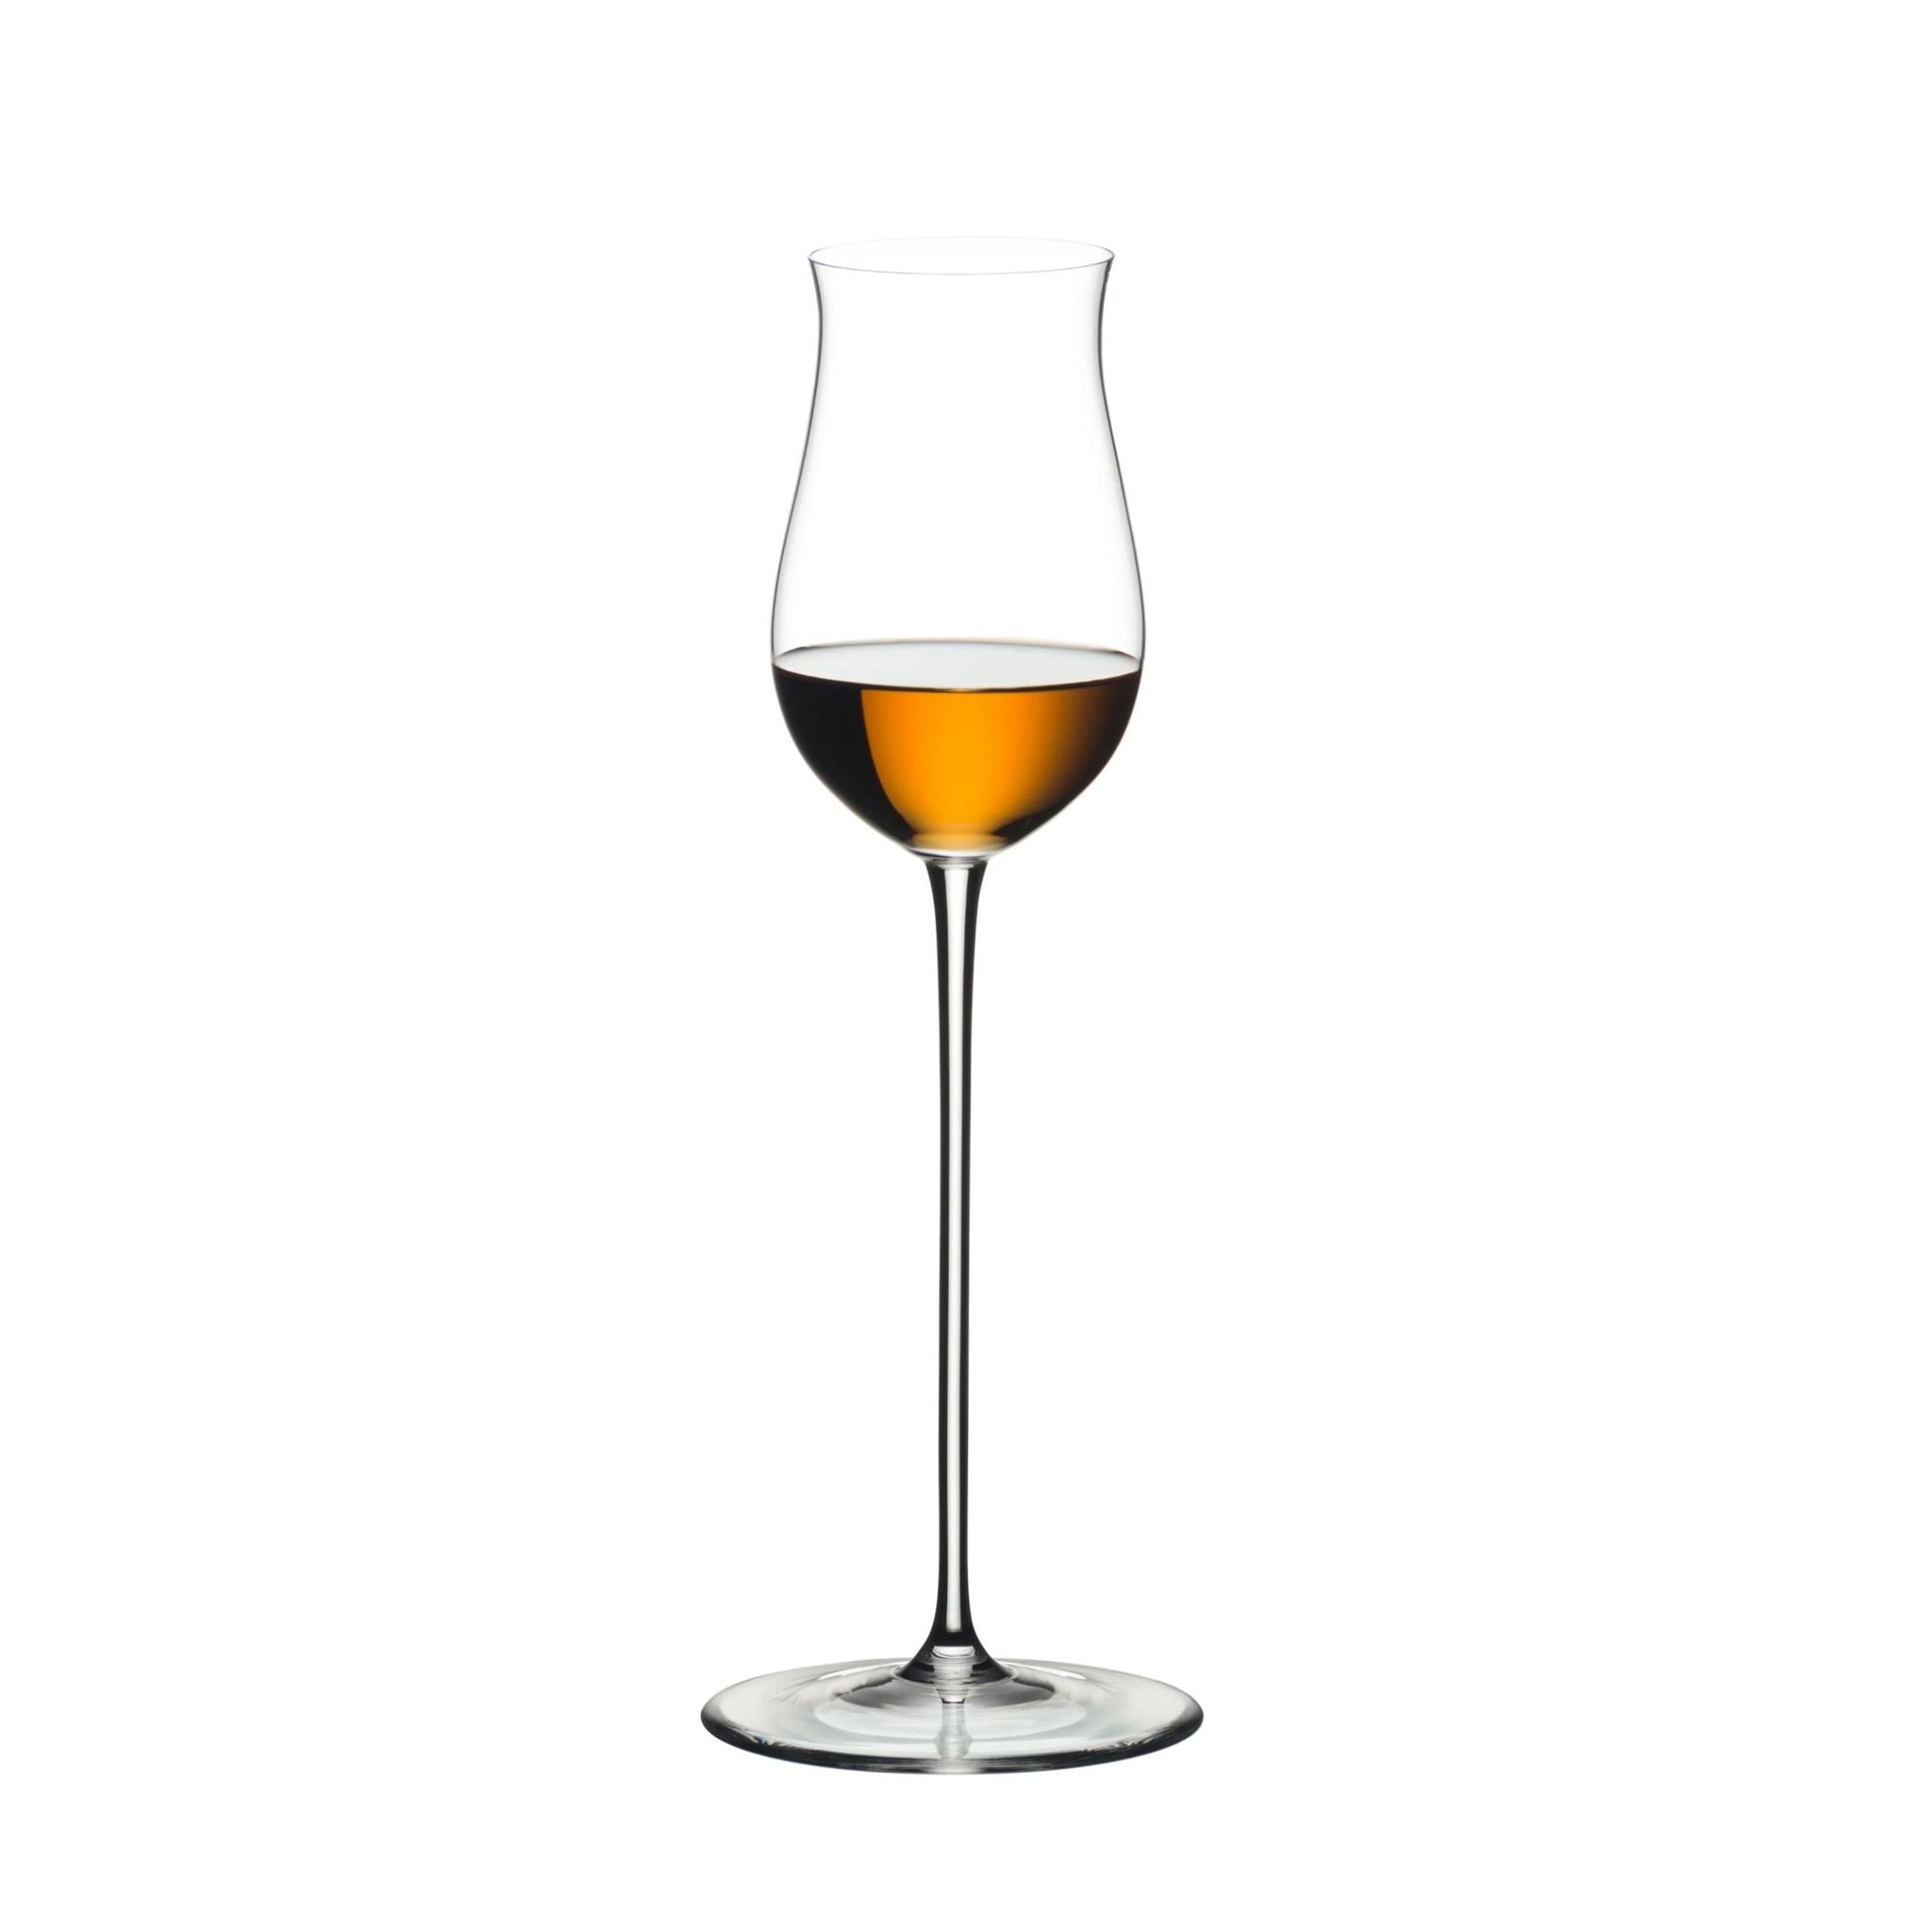 Riedel Veritas Spirits Glass - set of 2